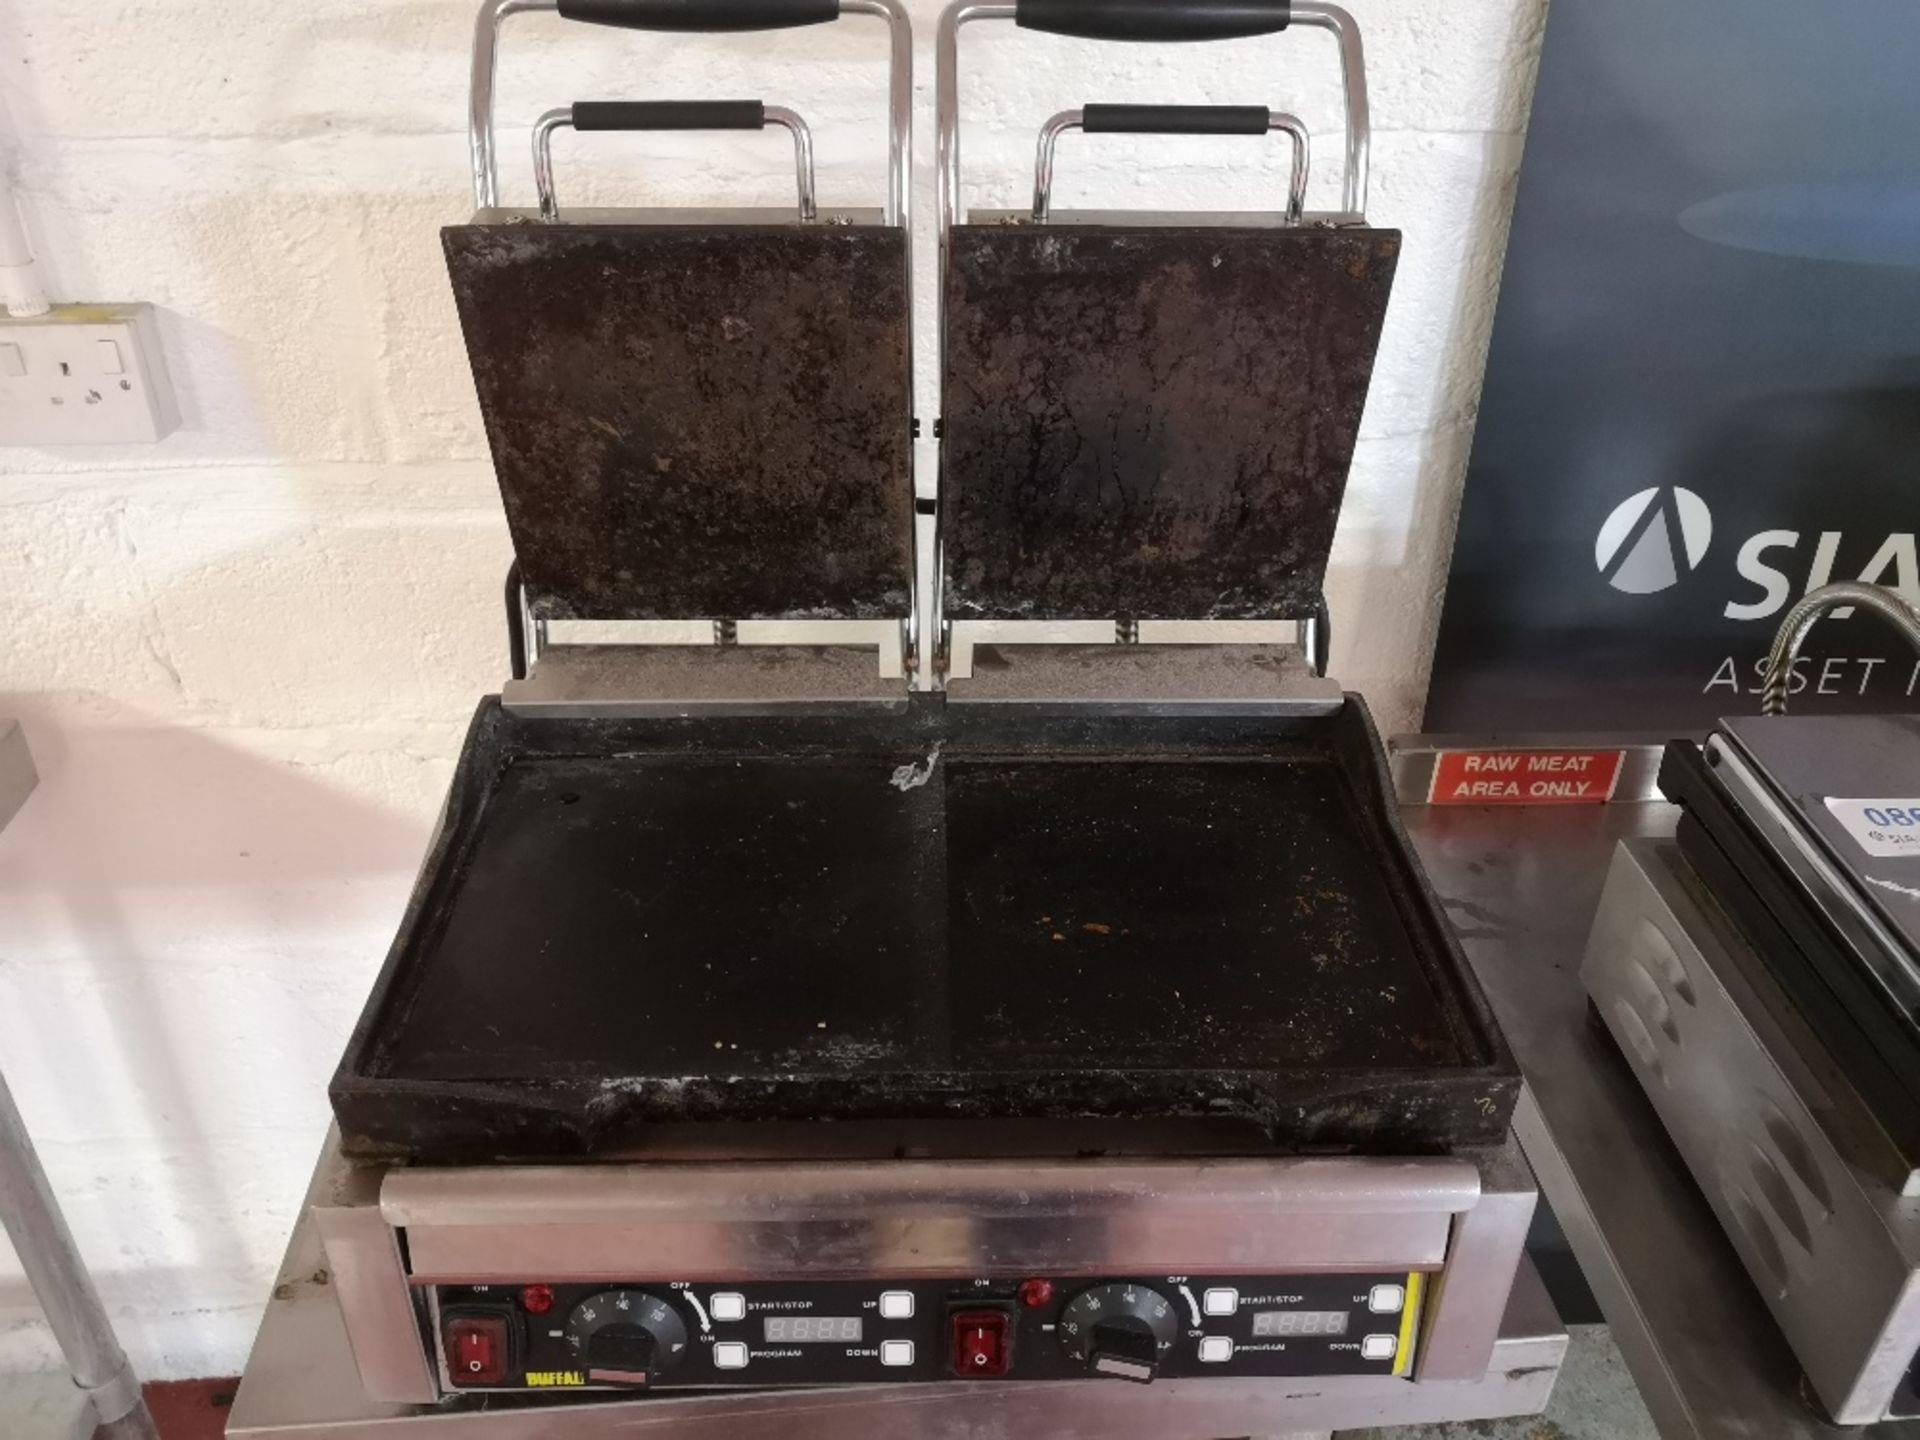 Buffalo L553-B-03 Double Contact Grill - Image 4 of 5